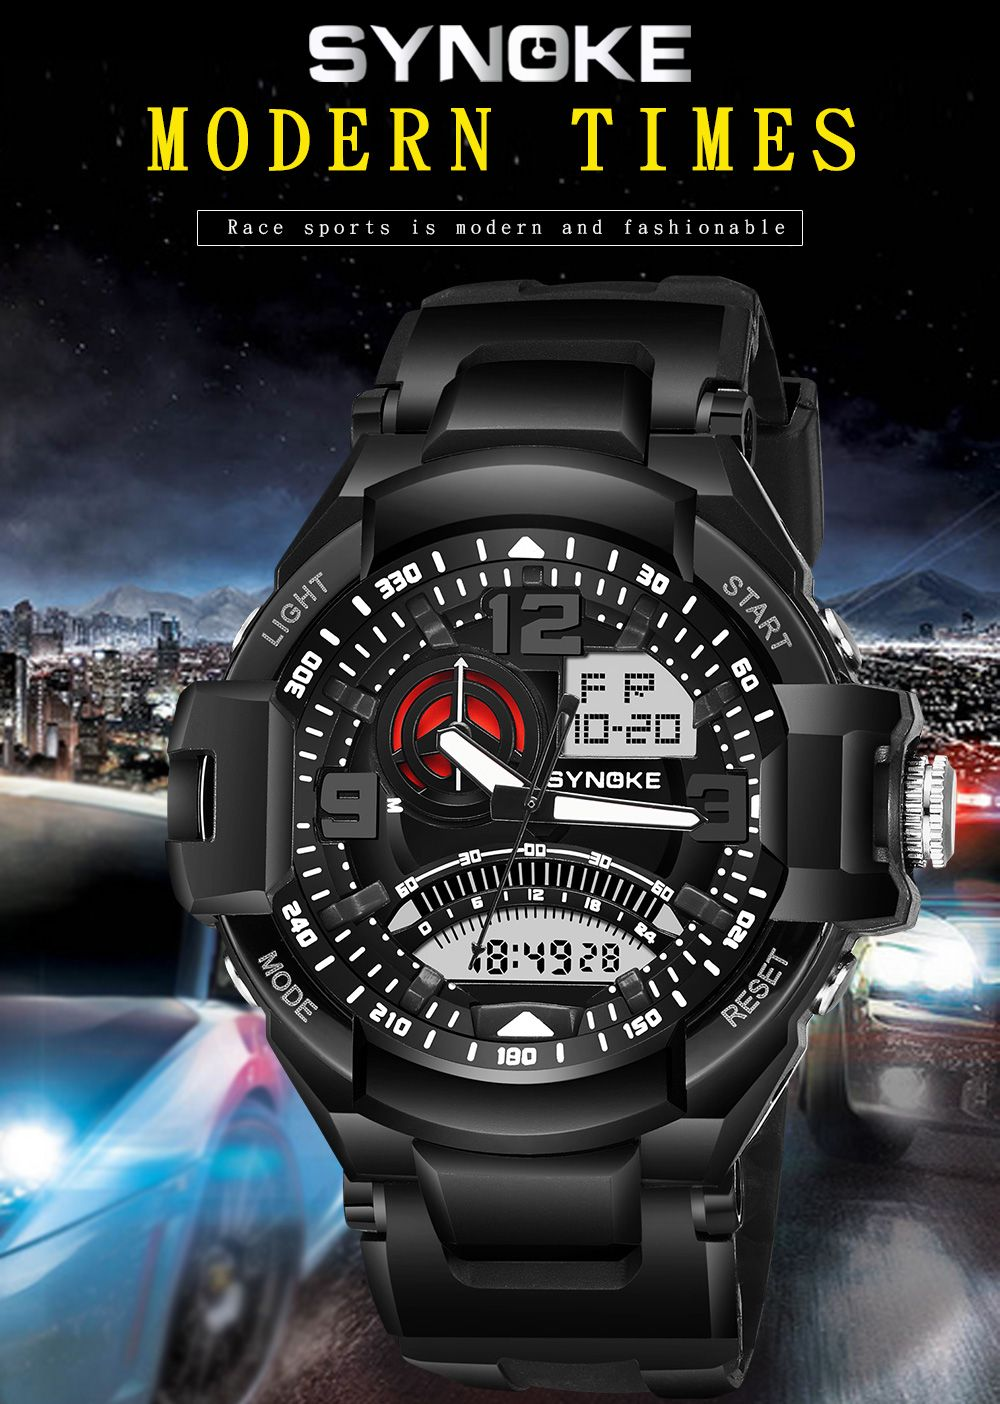 SYNOKE 67876 Trendy Waterproof Multifunctionable Men Watch